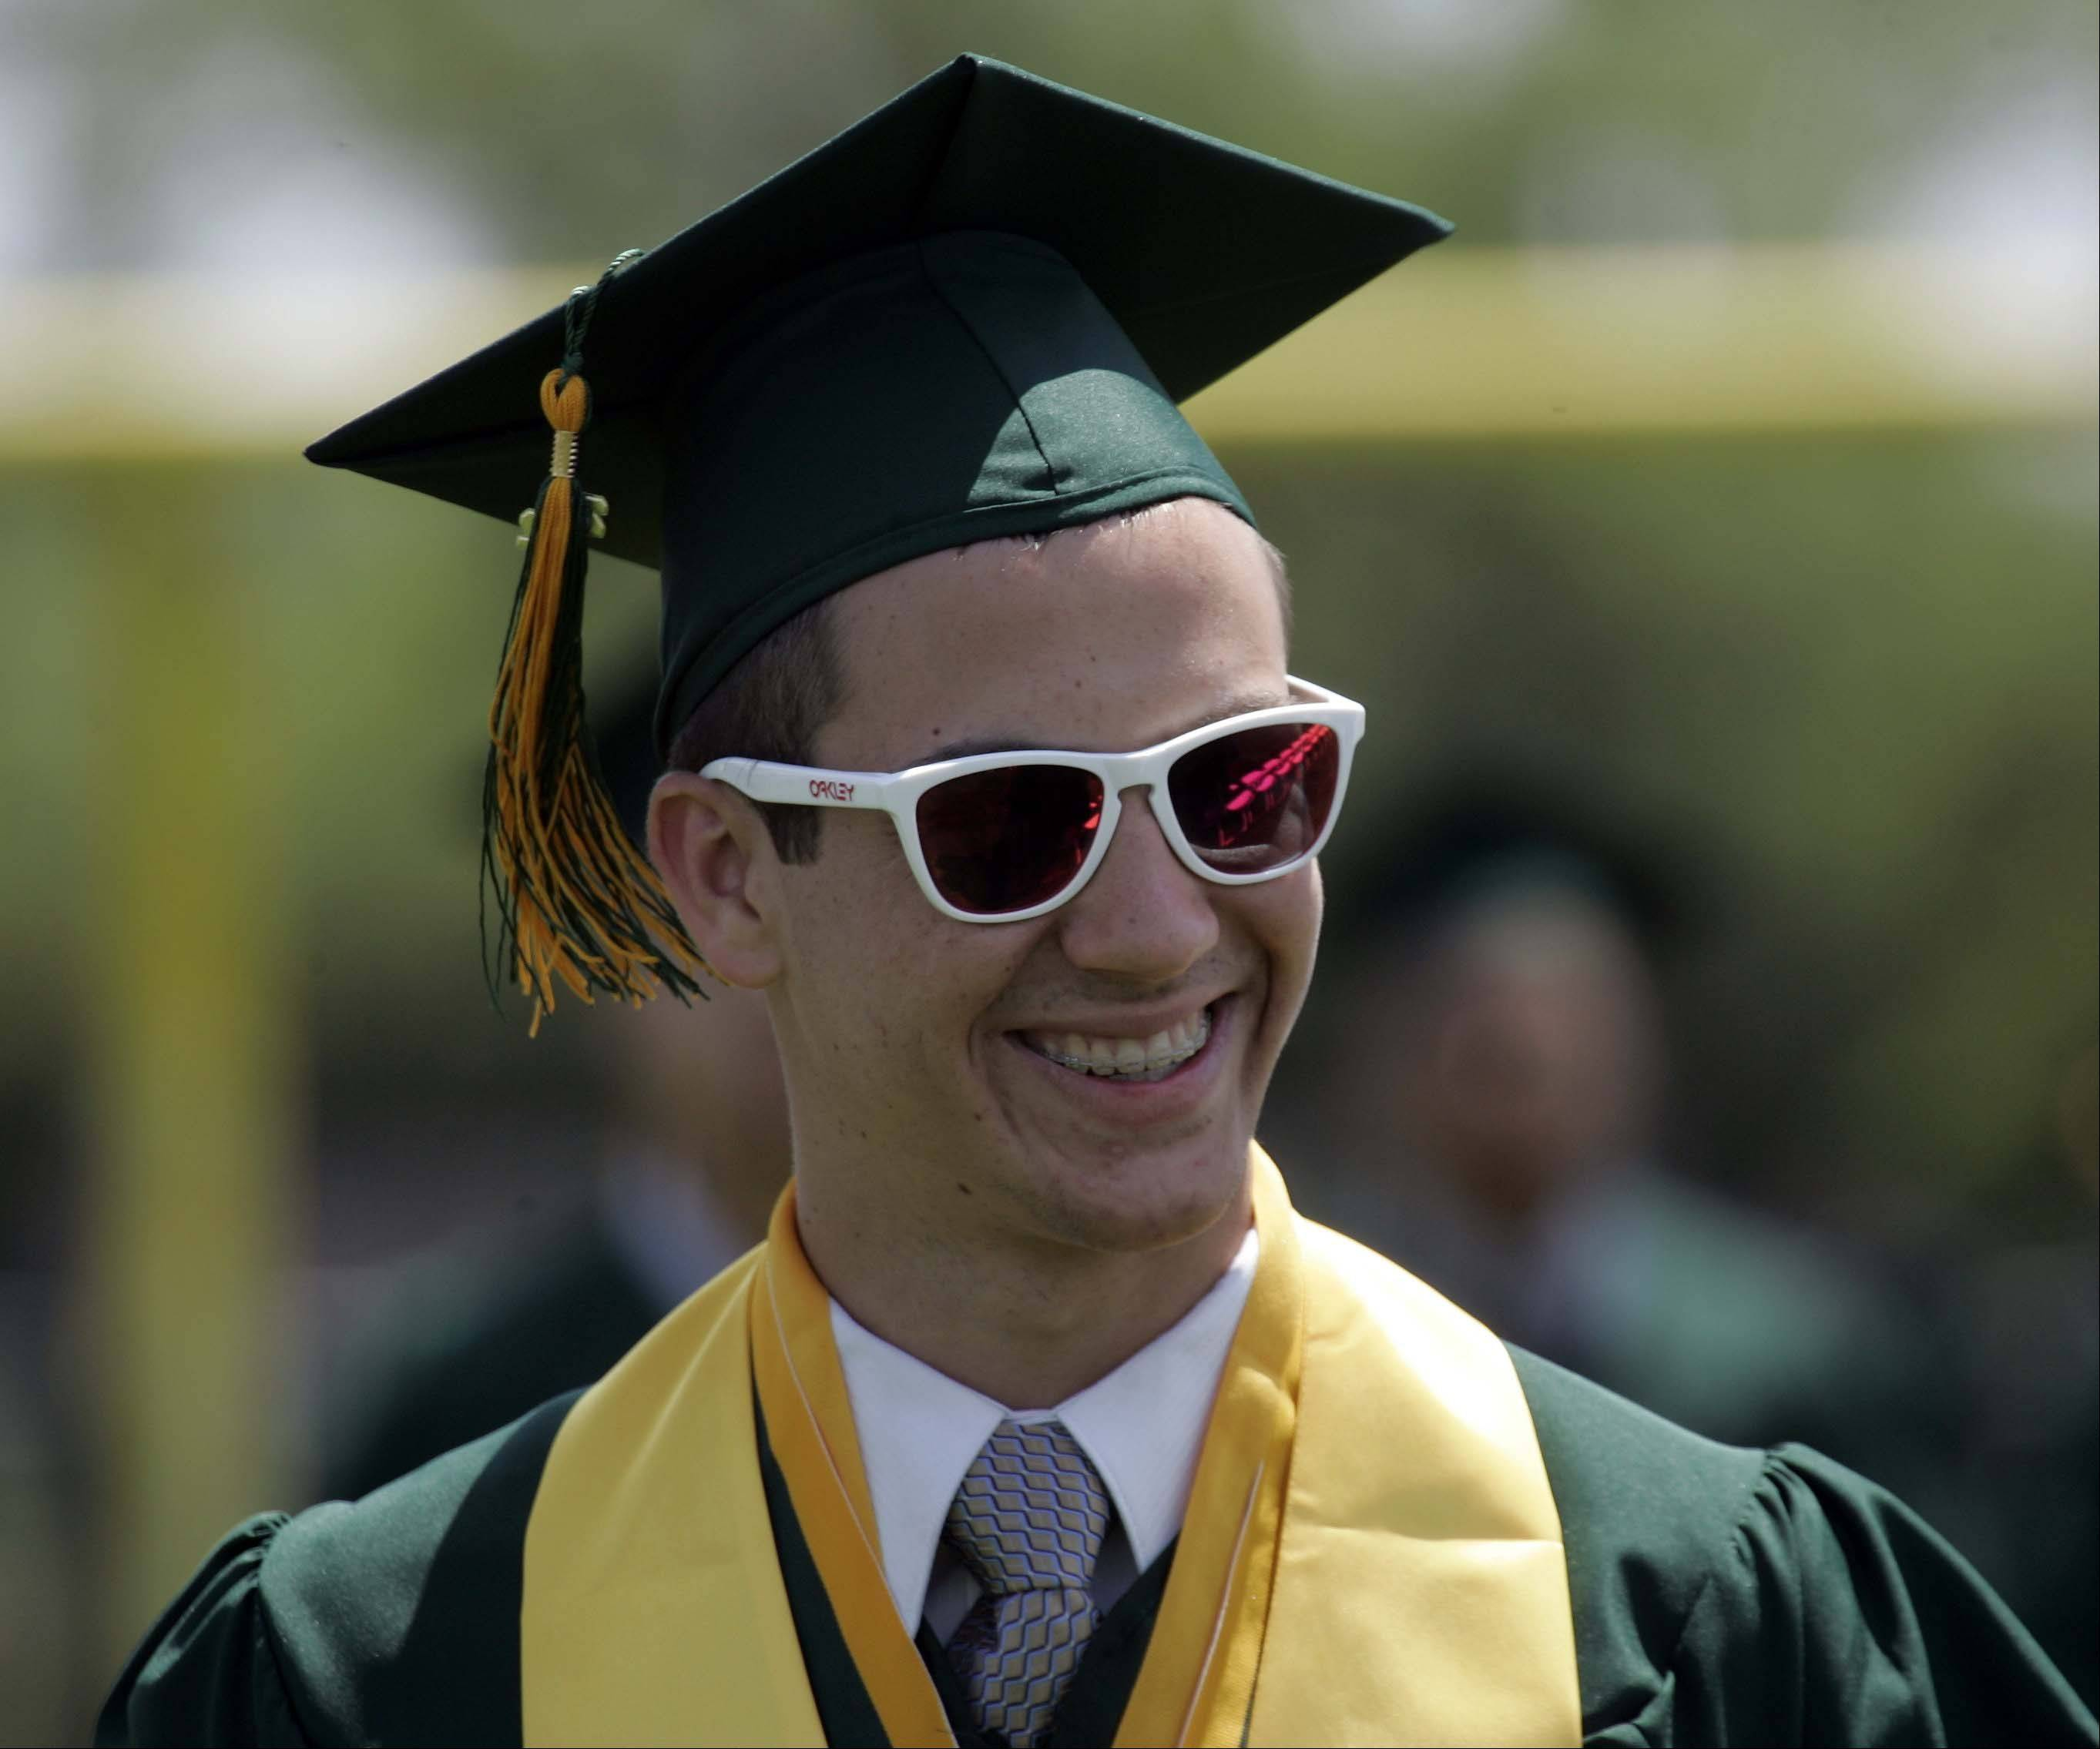 Images from the Elk Grove High School graduation on Sunday, June 3rd in Elk Grove.